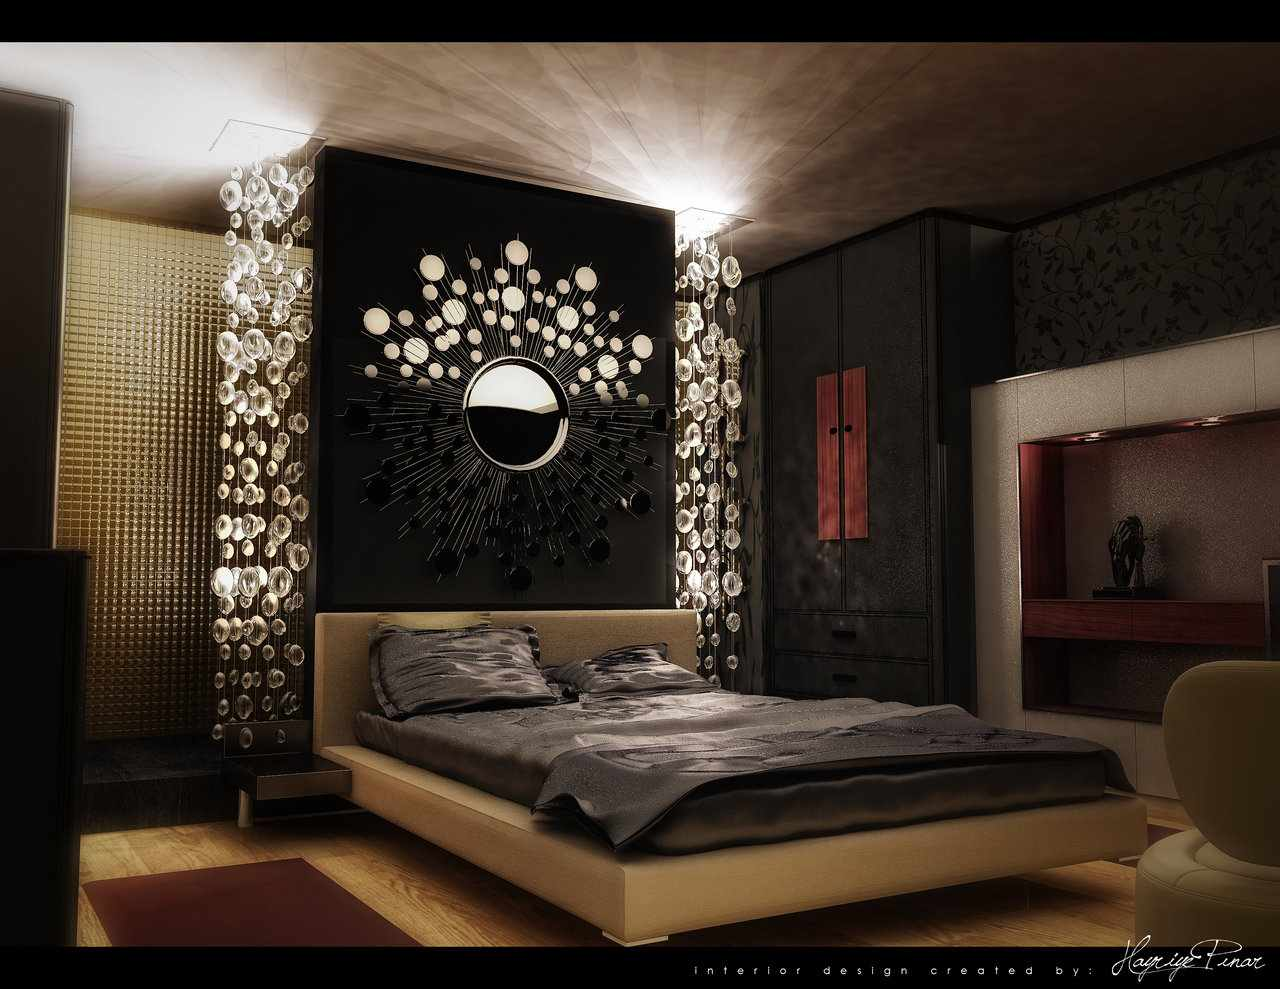 Ikea bedroom ideas ikea bedroom 2014 ideas room design Designer bedrooms